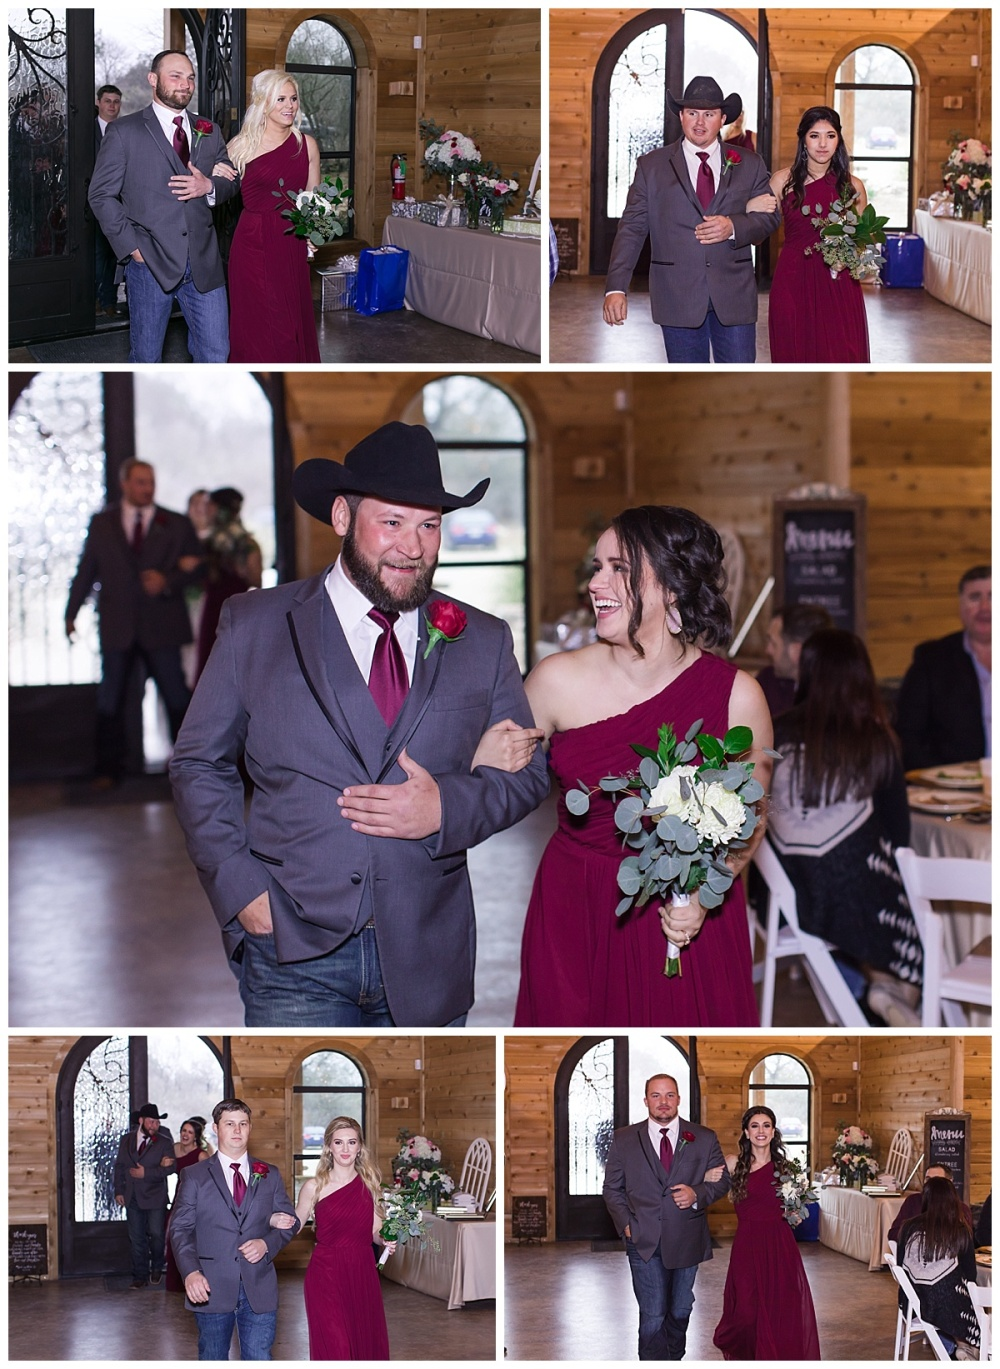 Carly-Barton-Photography-Geronimo-Oaks-Wedding-Venue-Texas-Hill-Country-Ronnie-Sarah_0111.jpg